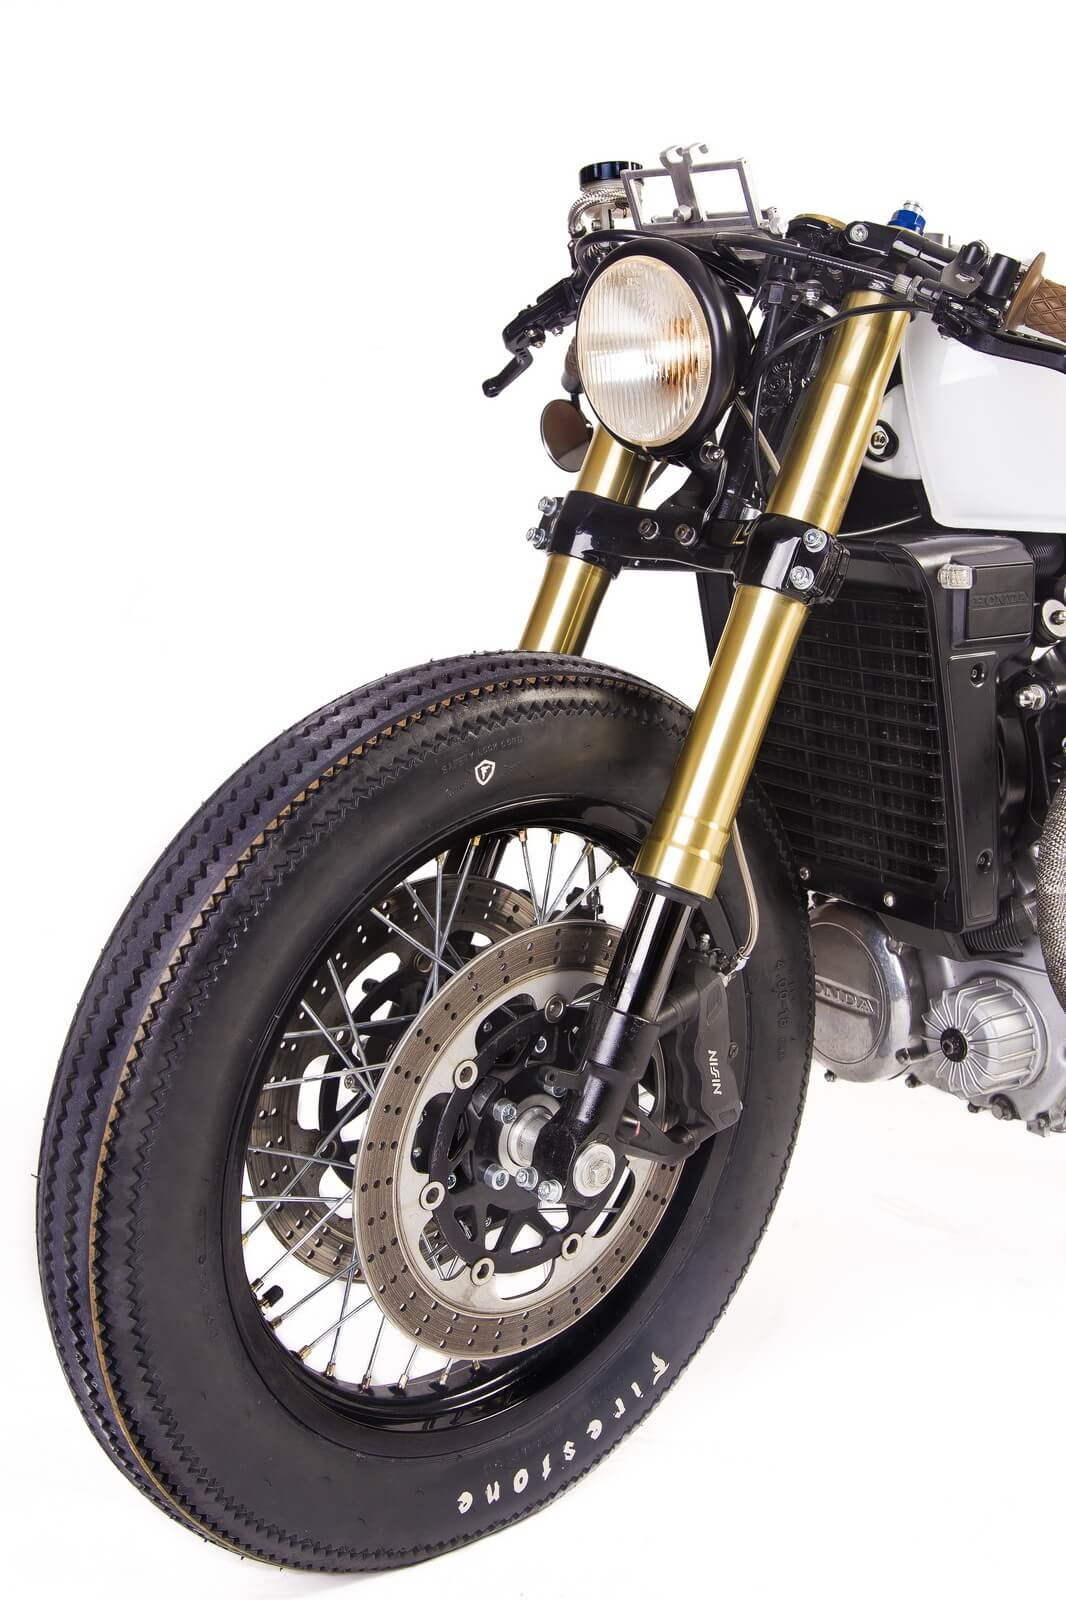 CX500 Caferacer 8